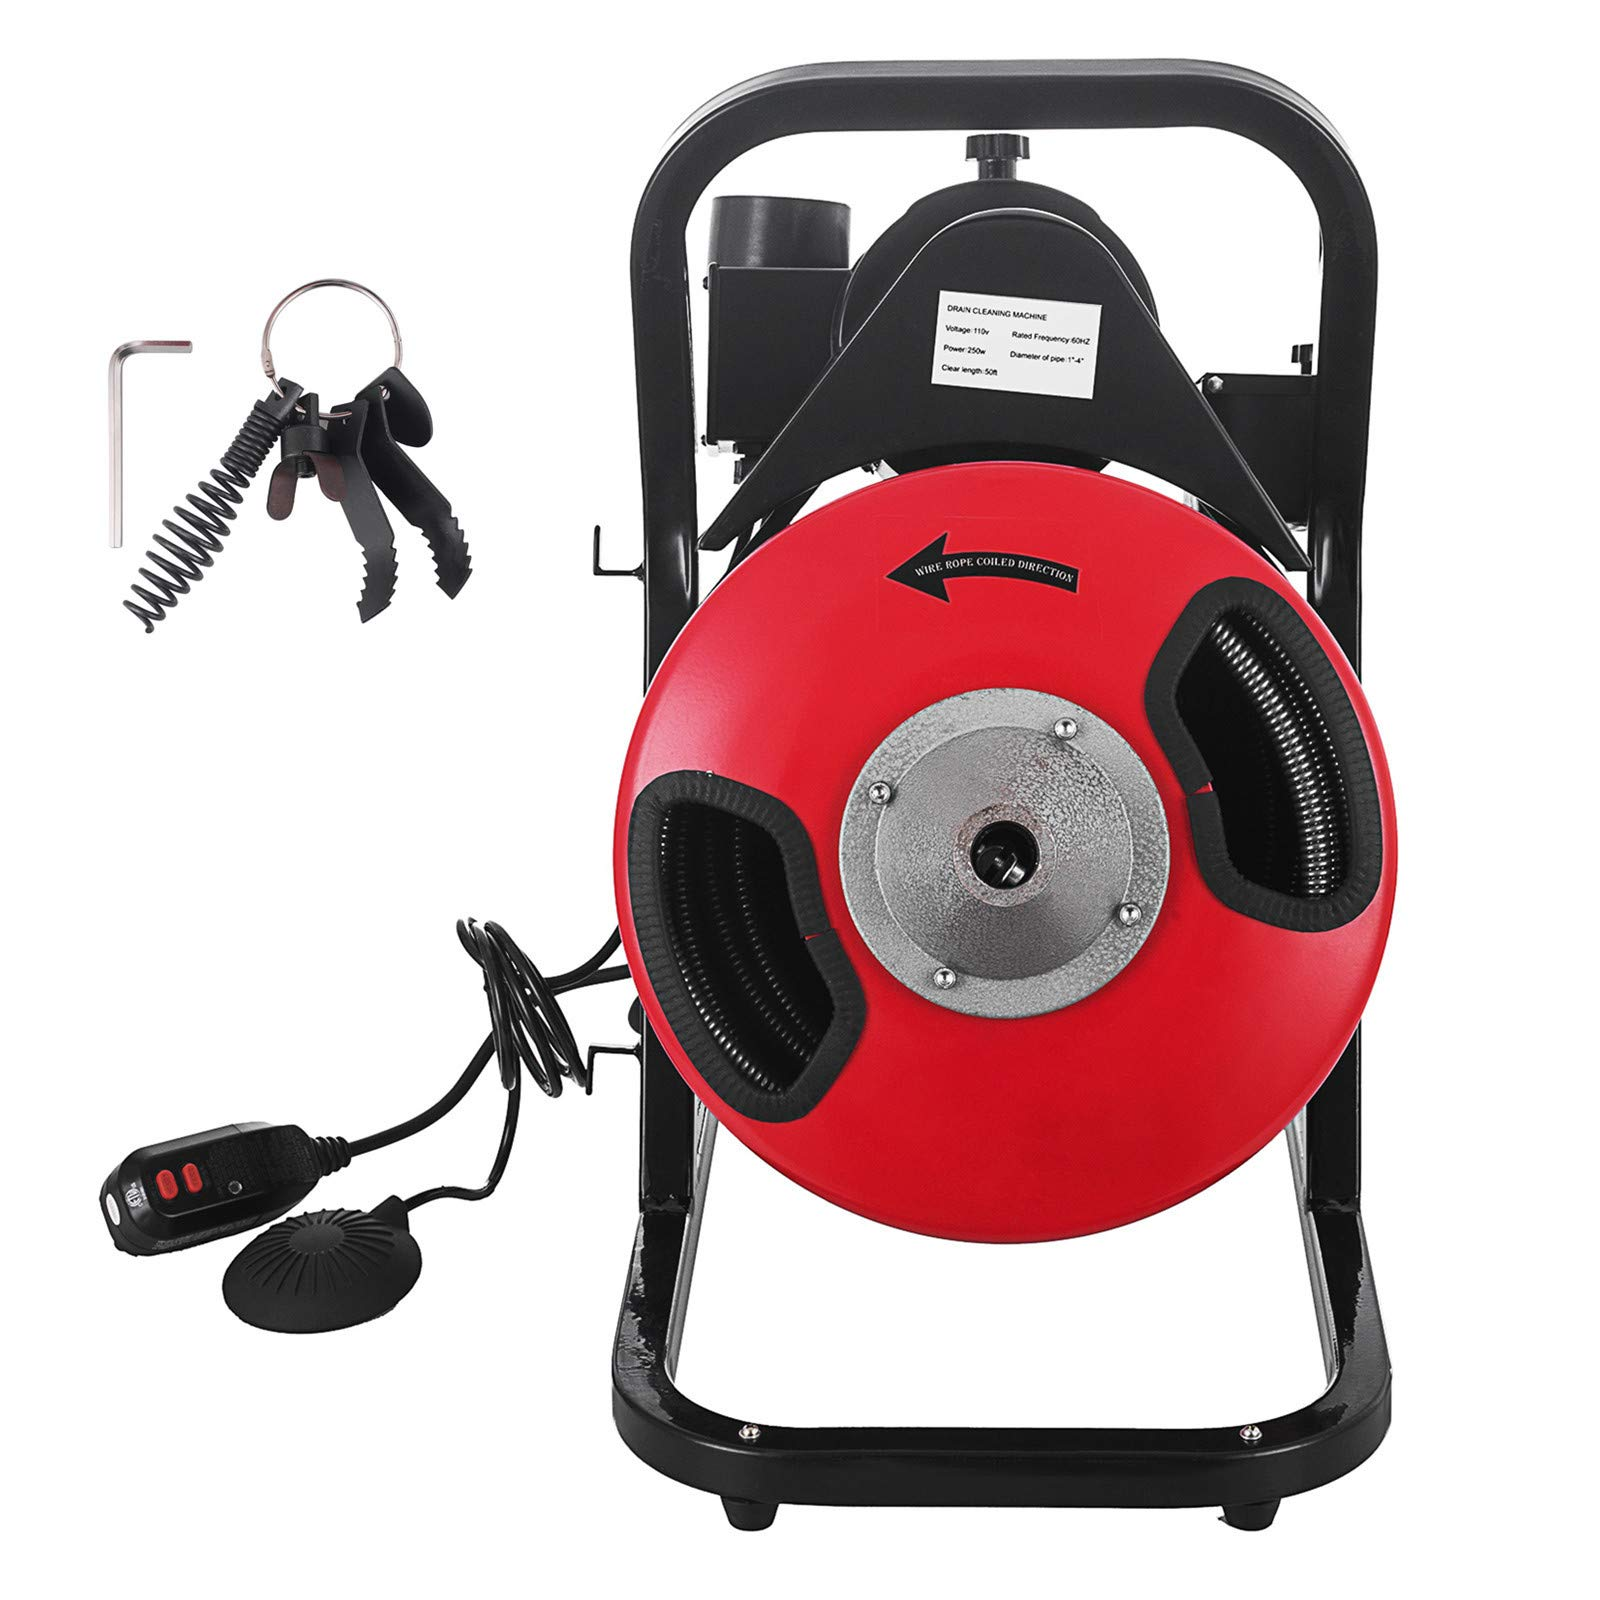 SHZOND Drain Cleaning Machine 1/2 Inch x 50 Ft Drain Cleaner Machine with 4 Cutter and Foot Switch Electric Drain Pipe Cleaner for 1 to 4 Inch Pipes (50 FT) by SHZOND (Image #1)